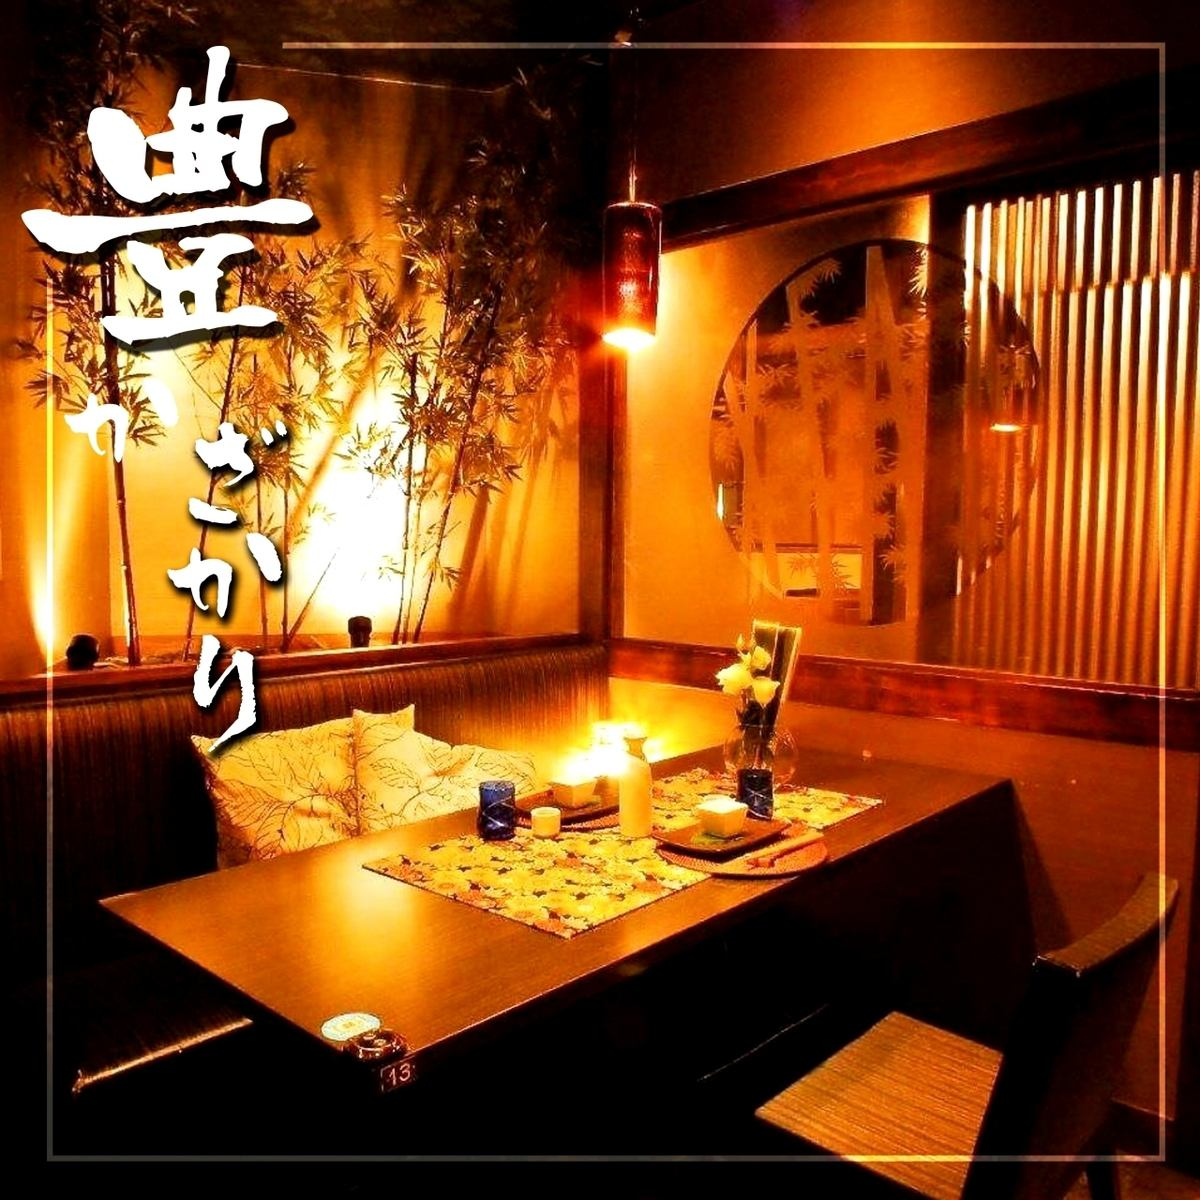 【2 persons private room】 2 hours all-you-can-drink plan ♪ with draft beer / 2000 yen on weekdays ⇒ 980 yen